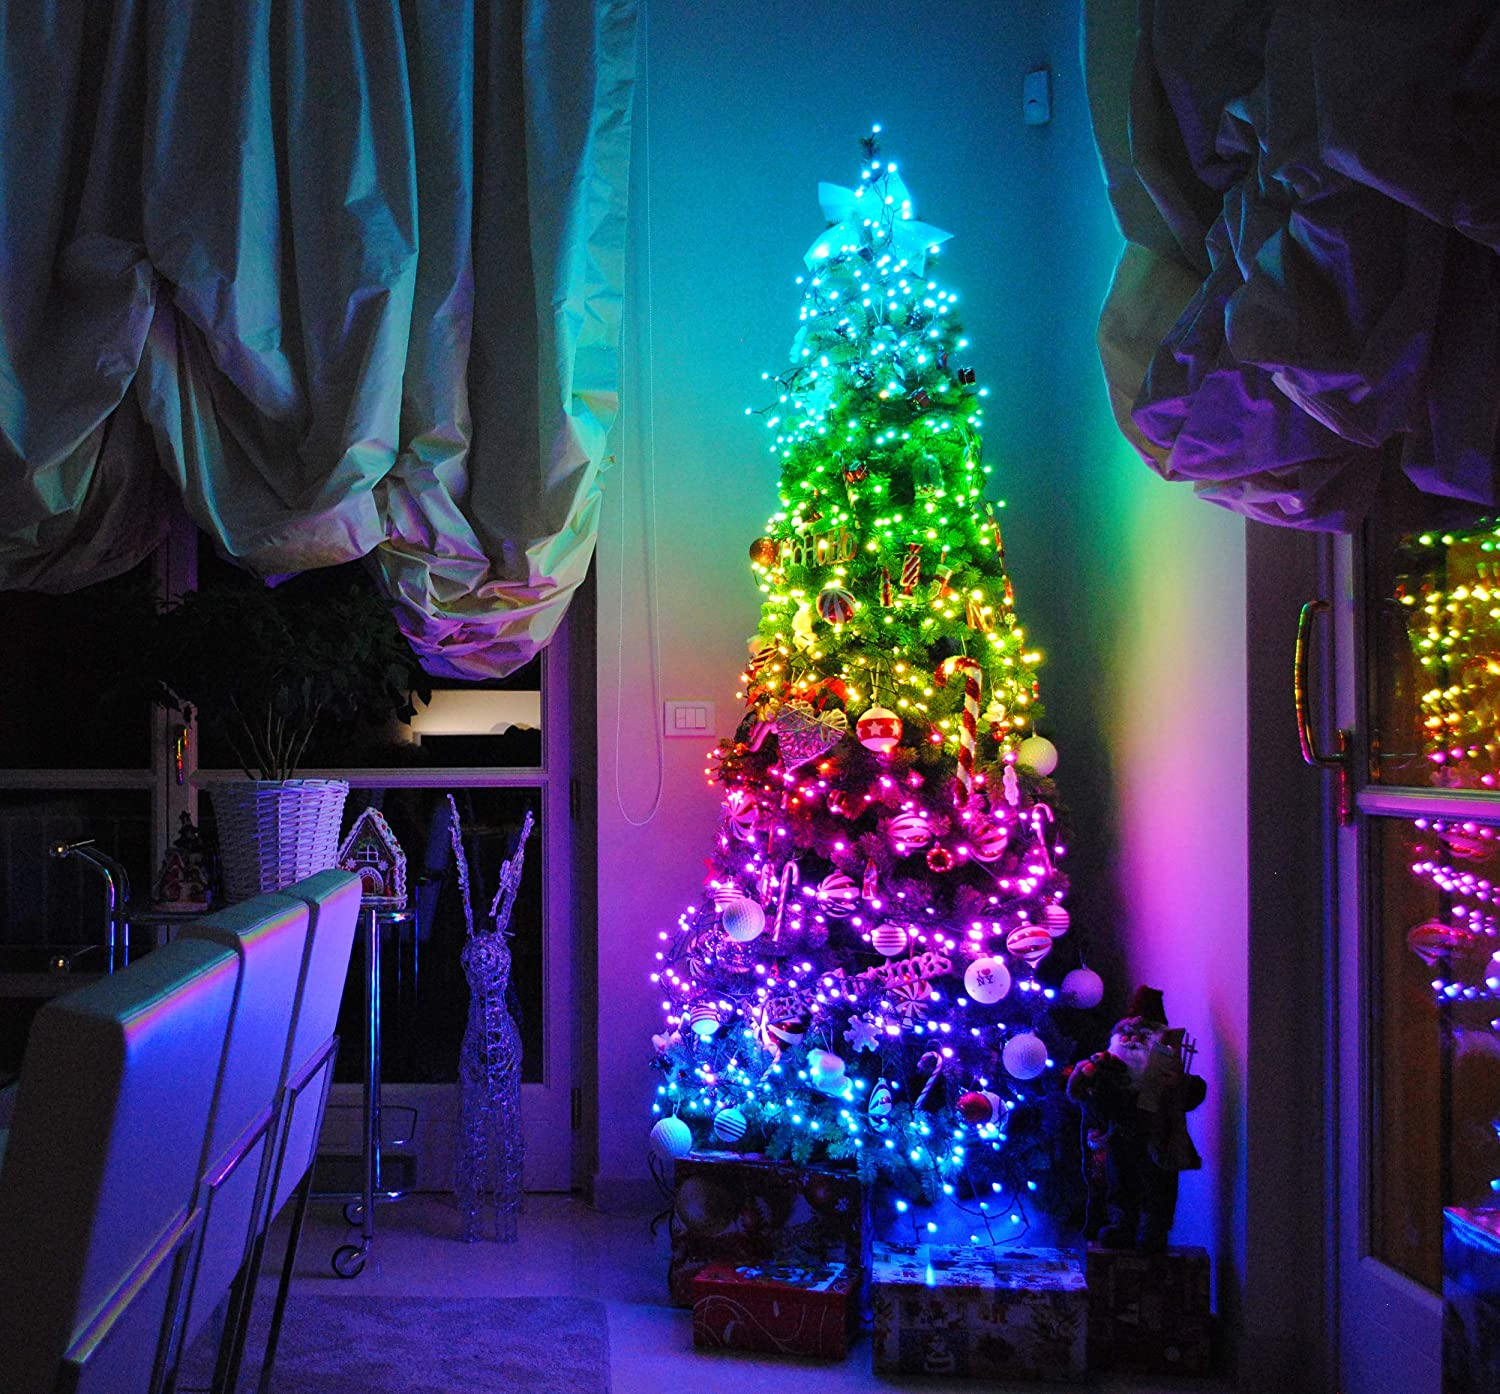 What tree lights settings twink authoritative point